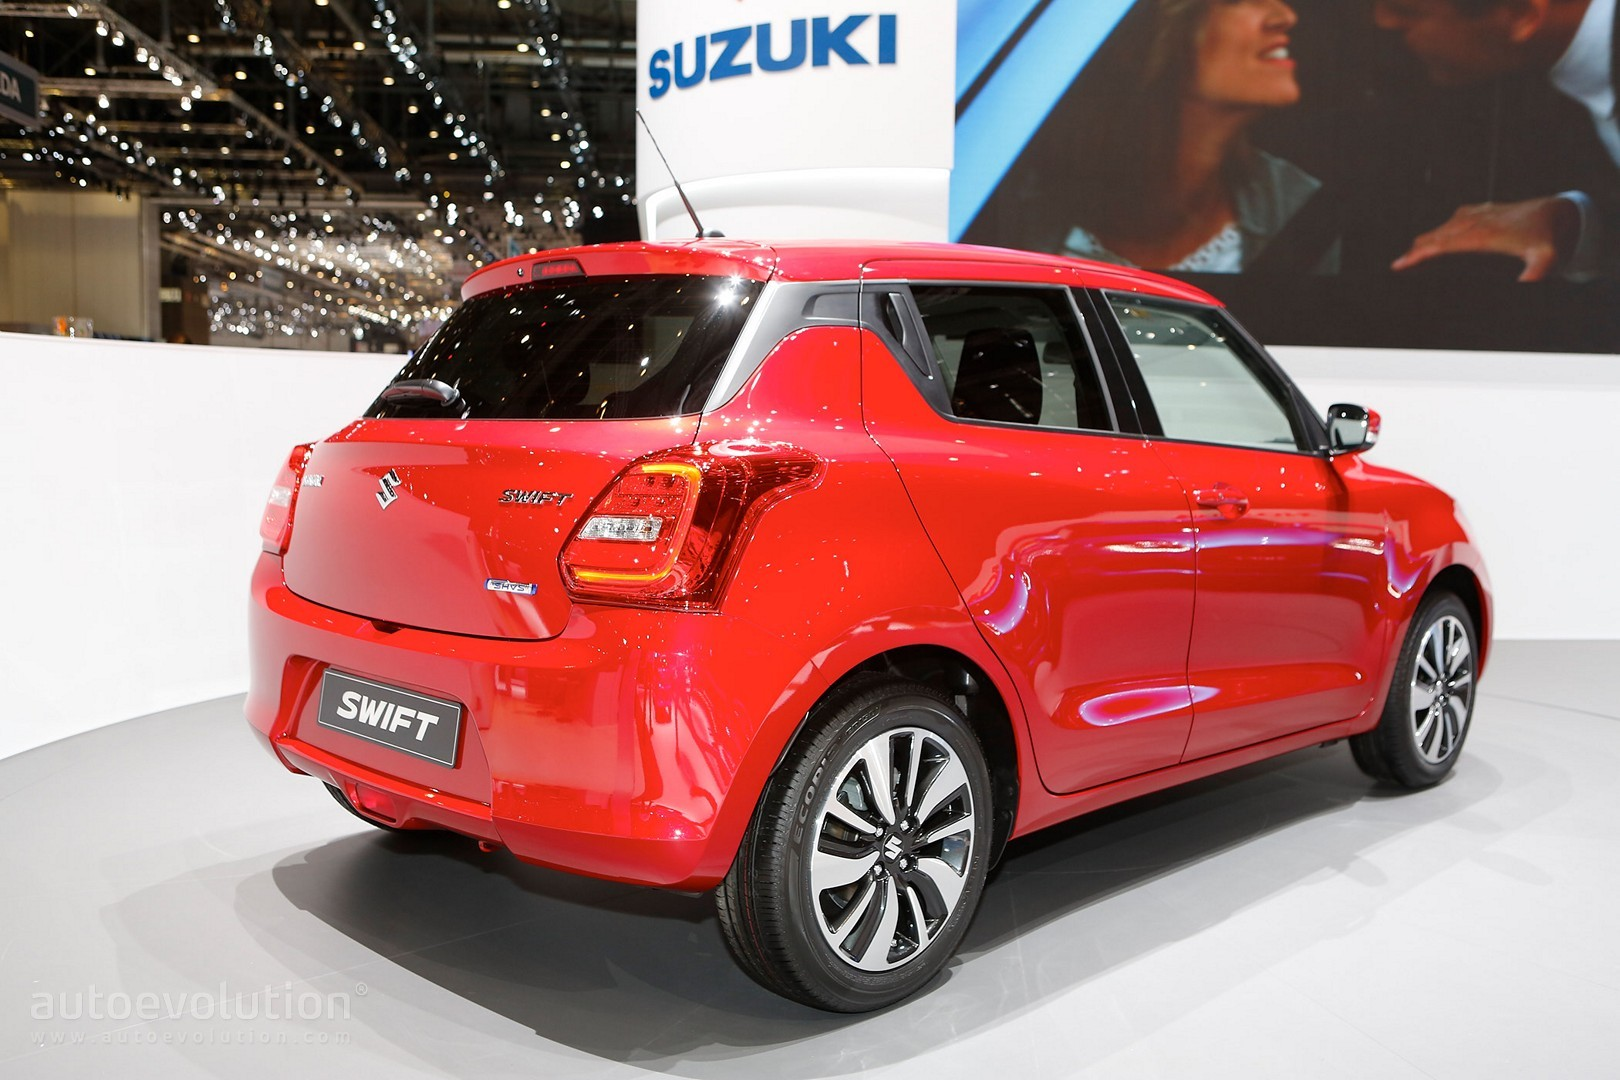 2017 Suzuki Swift Makes European Debut in Geneva - autoevolution